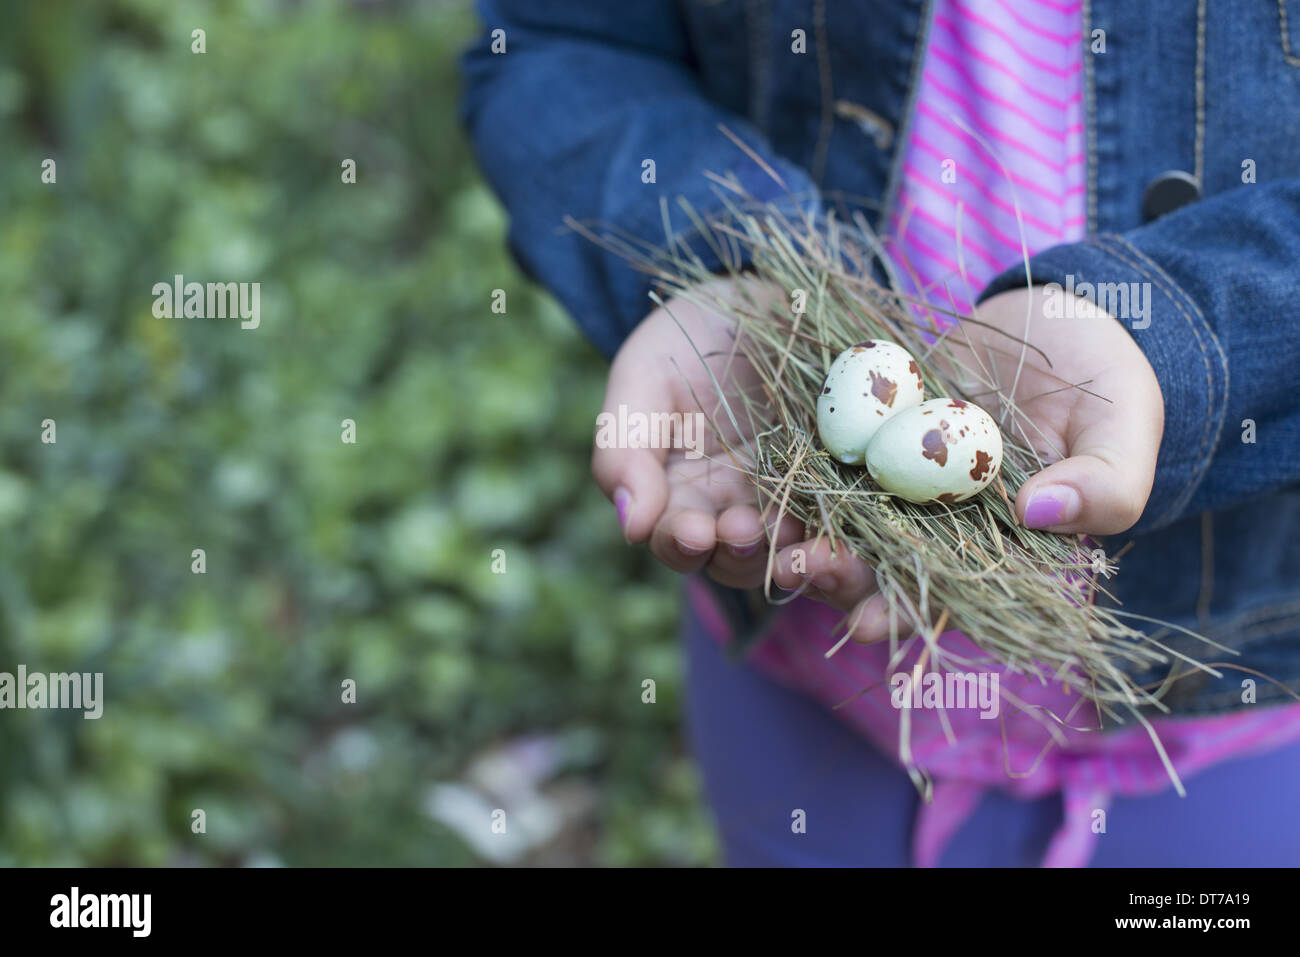 A girl holding out cupped hands, with a small bunch of twigs and two bird's eggs. - Stock Image